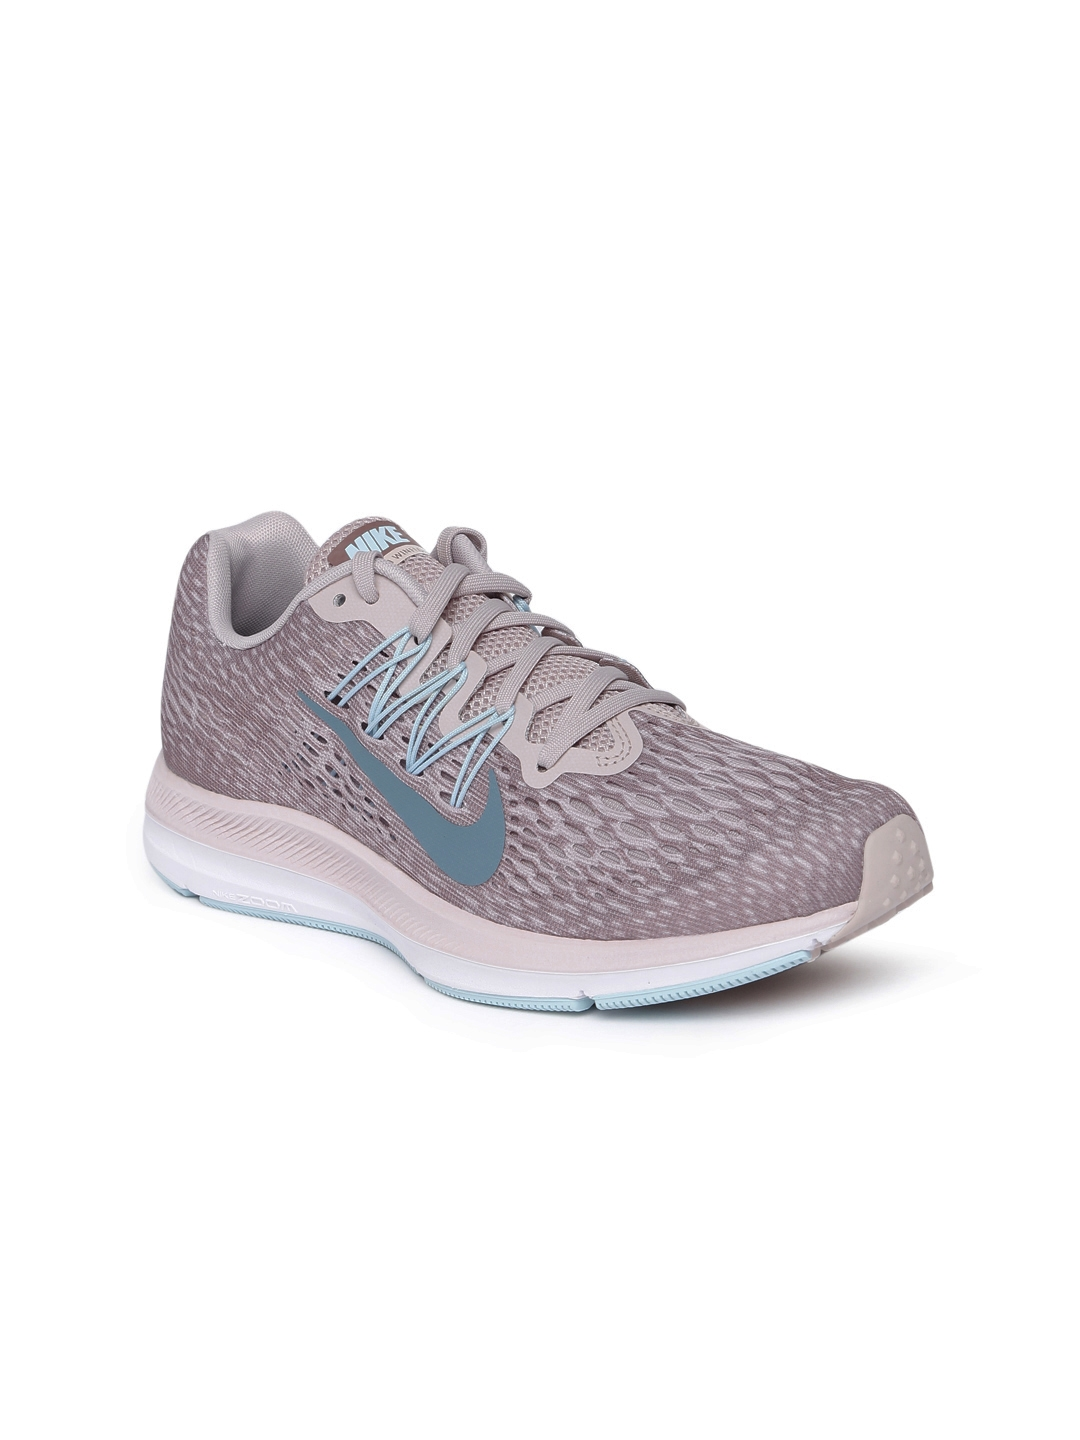 6eab0418 Buy Nike Women Pink Zoom Winflo 5 Running Shoes - Sports Shoes for ...